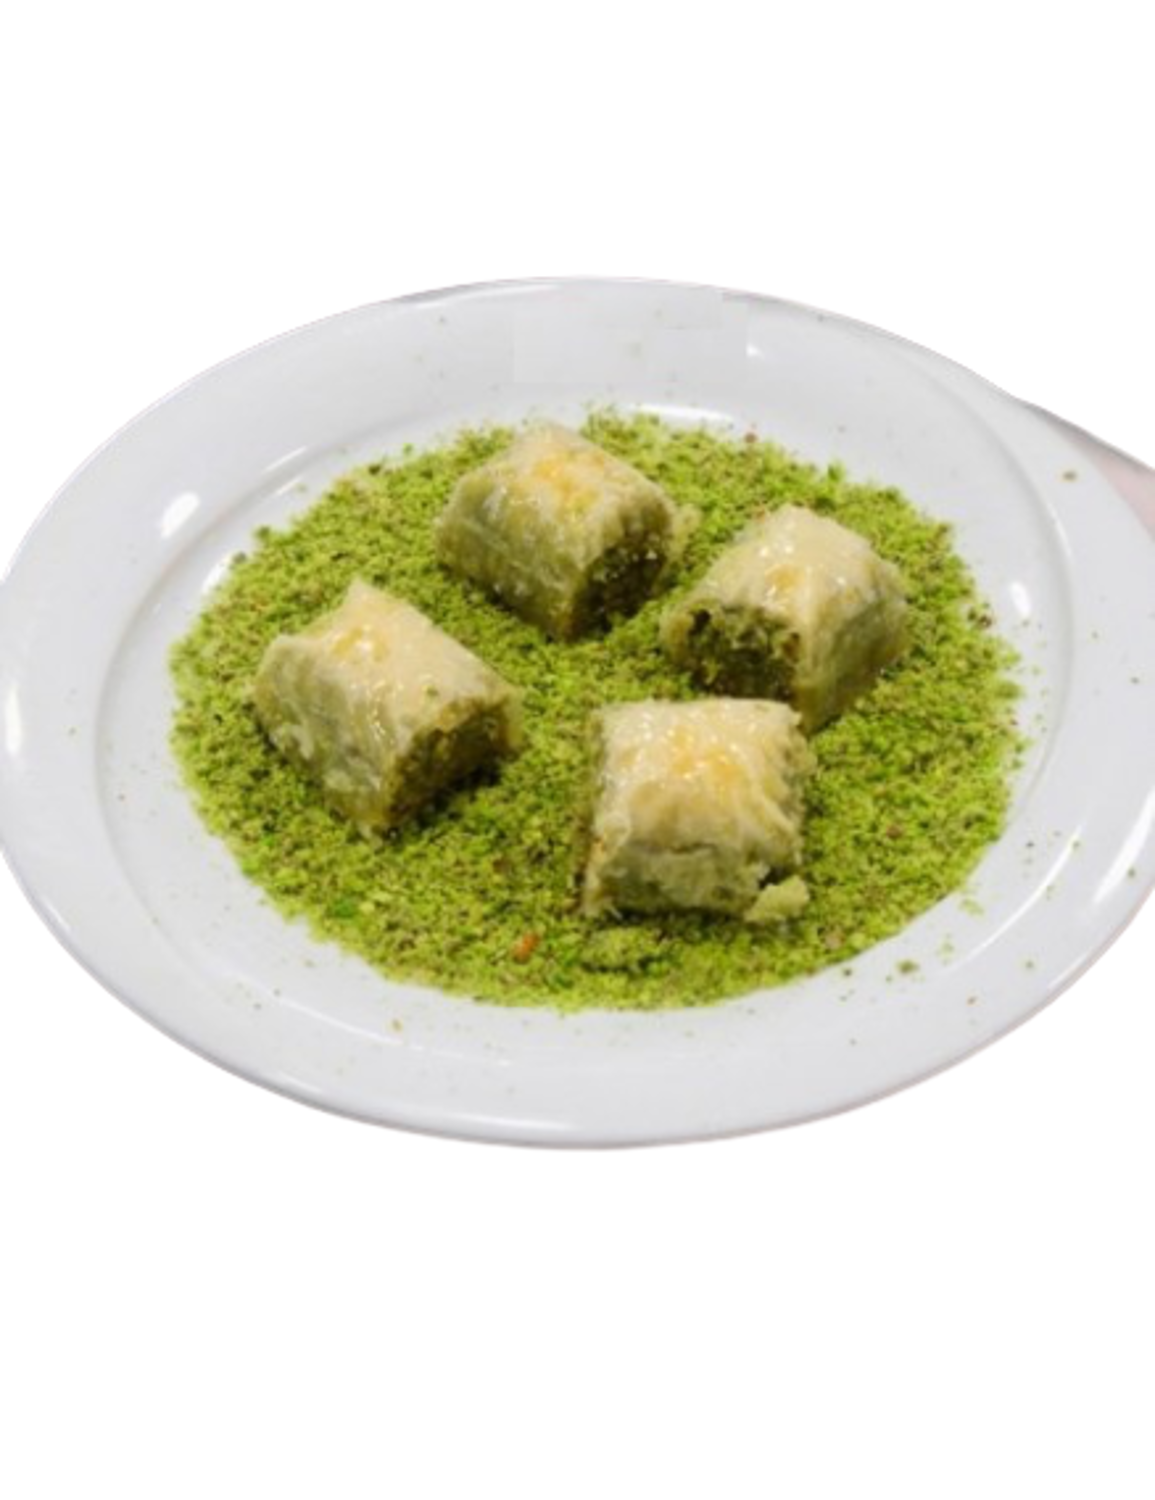 Picture of MEVLANA BAKLAVA ANTEP OZEL ( SPECIAL ANTEP )